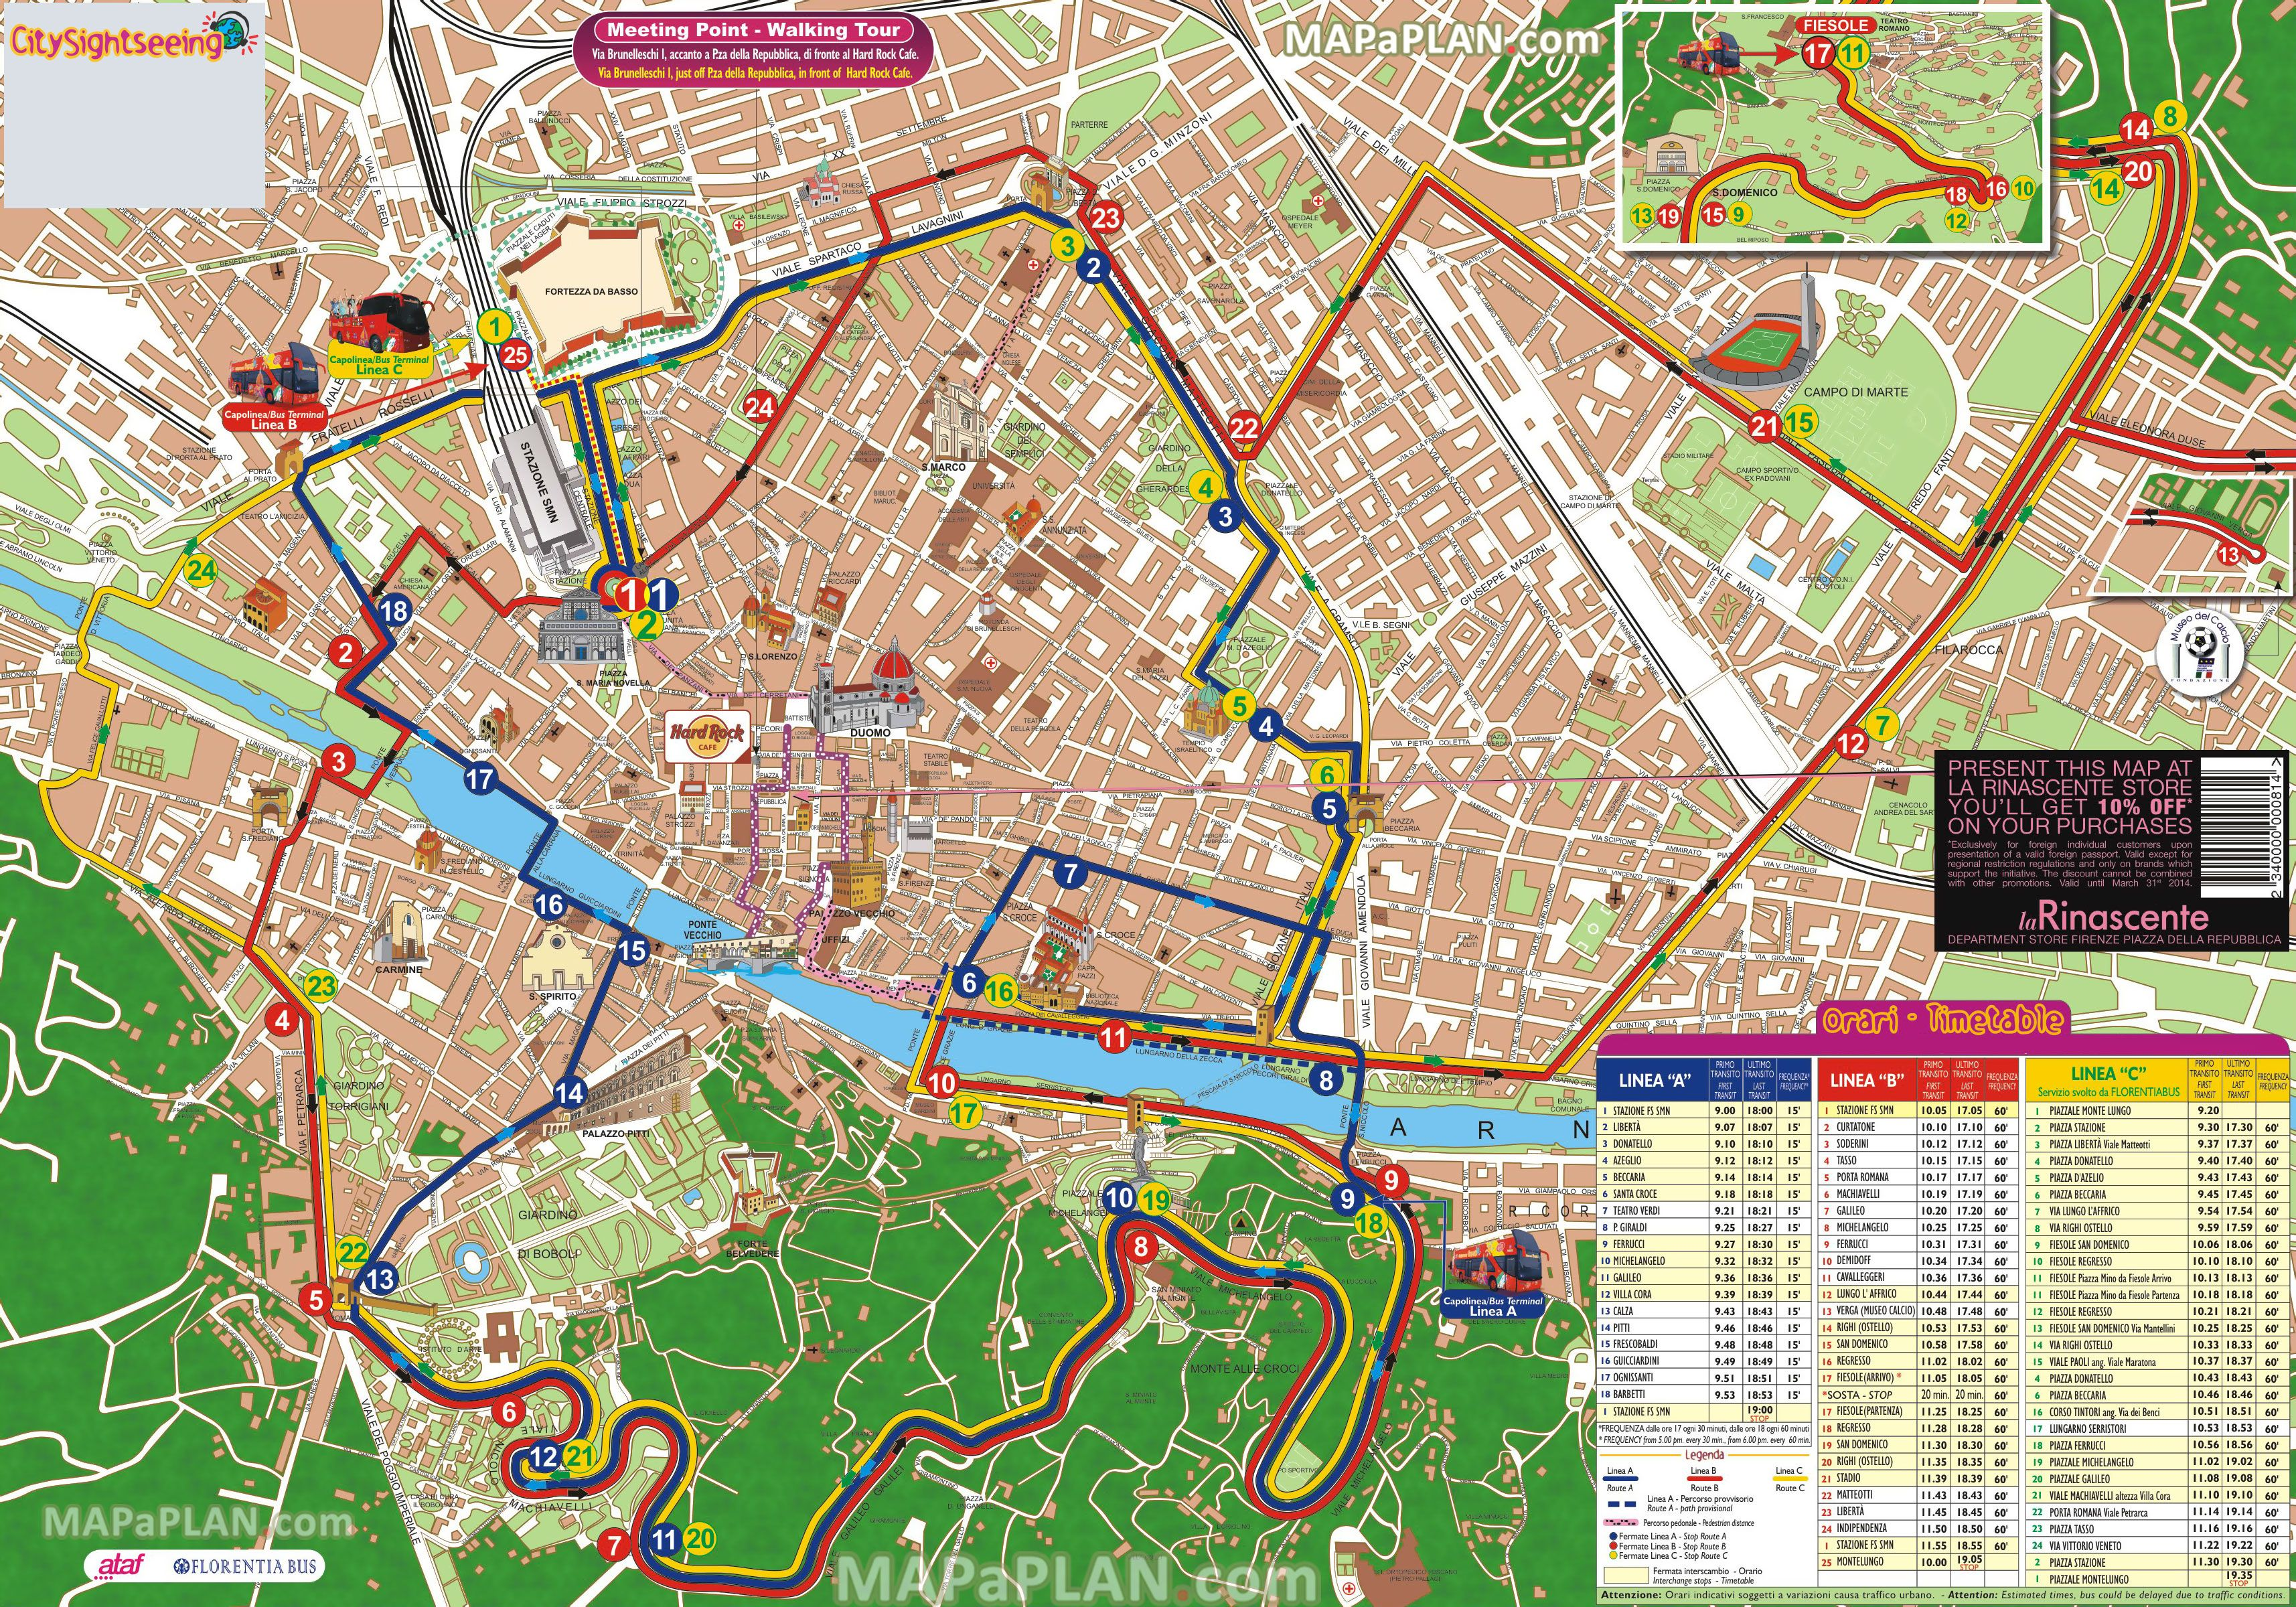 Map Uk Attractions%0A city sightseeing hop on hop off double decker open top coach bus tour  basilica di santa